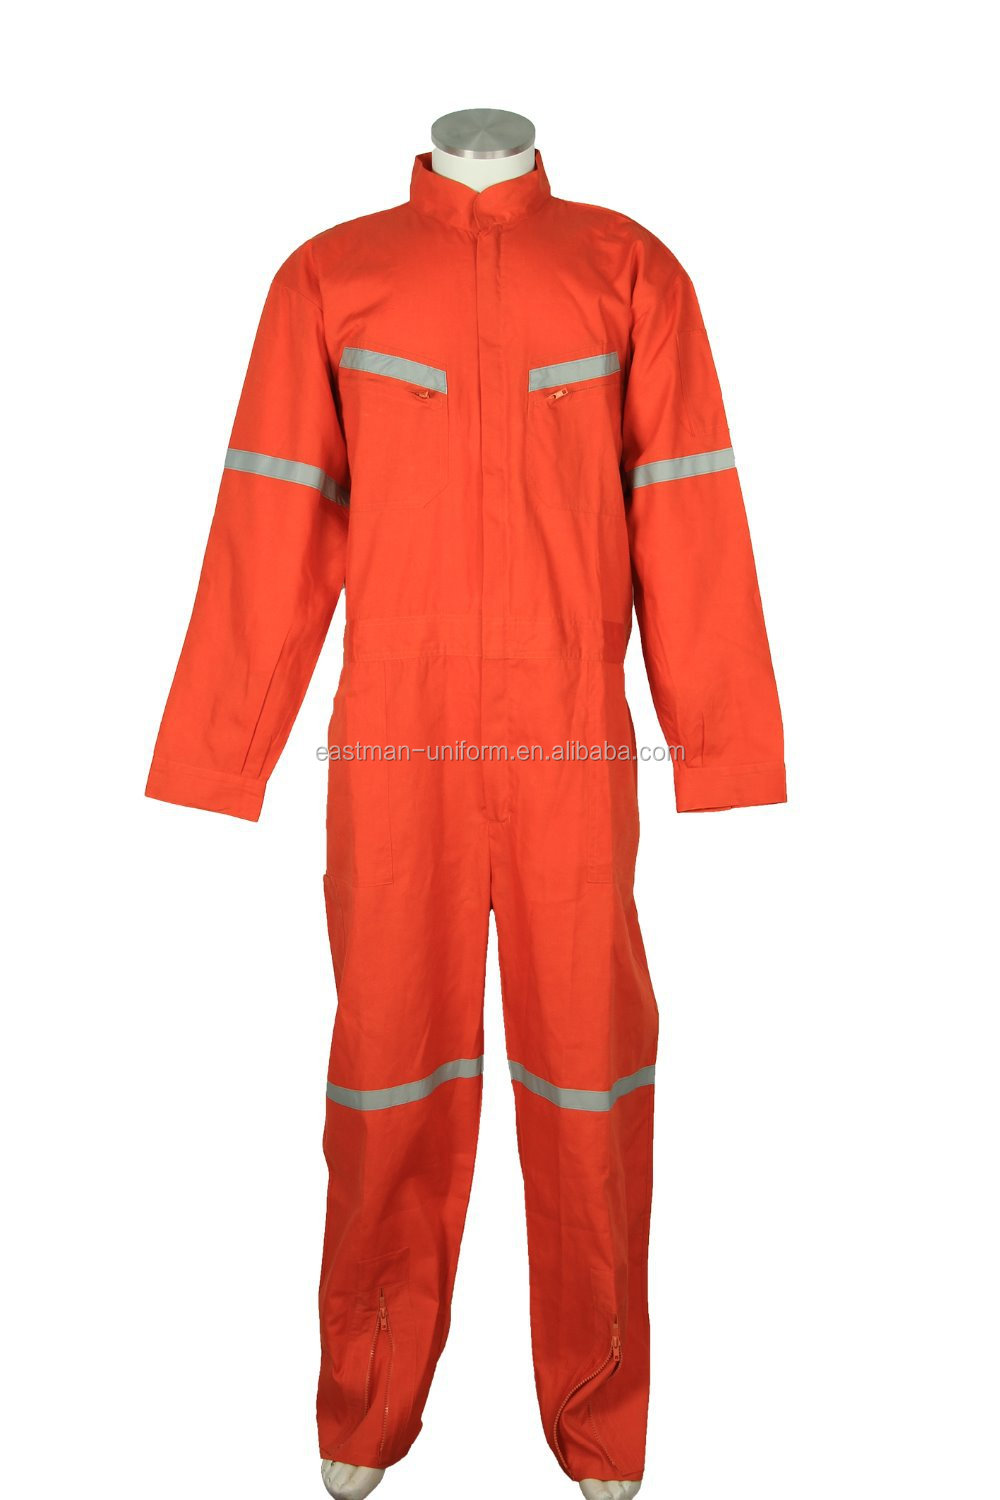 96255200d43d Oem With Reflective Stripe Nomex Iiia Fire Retardant Rescue Coverall - Buy  Insulated Nomex Coverall